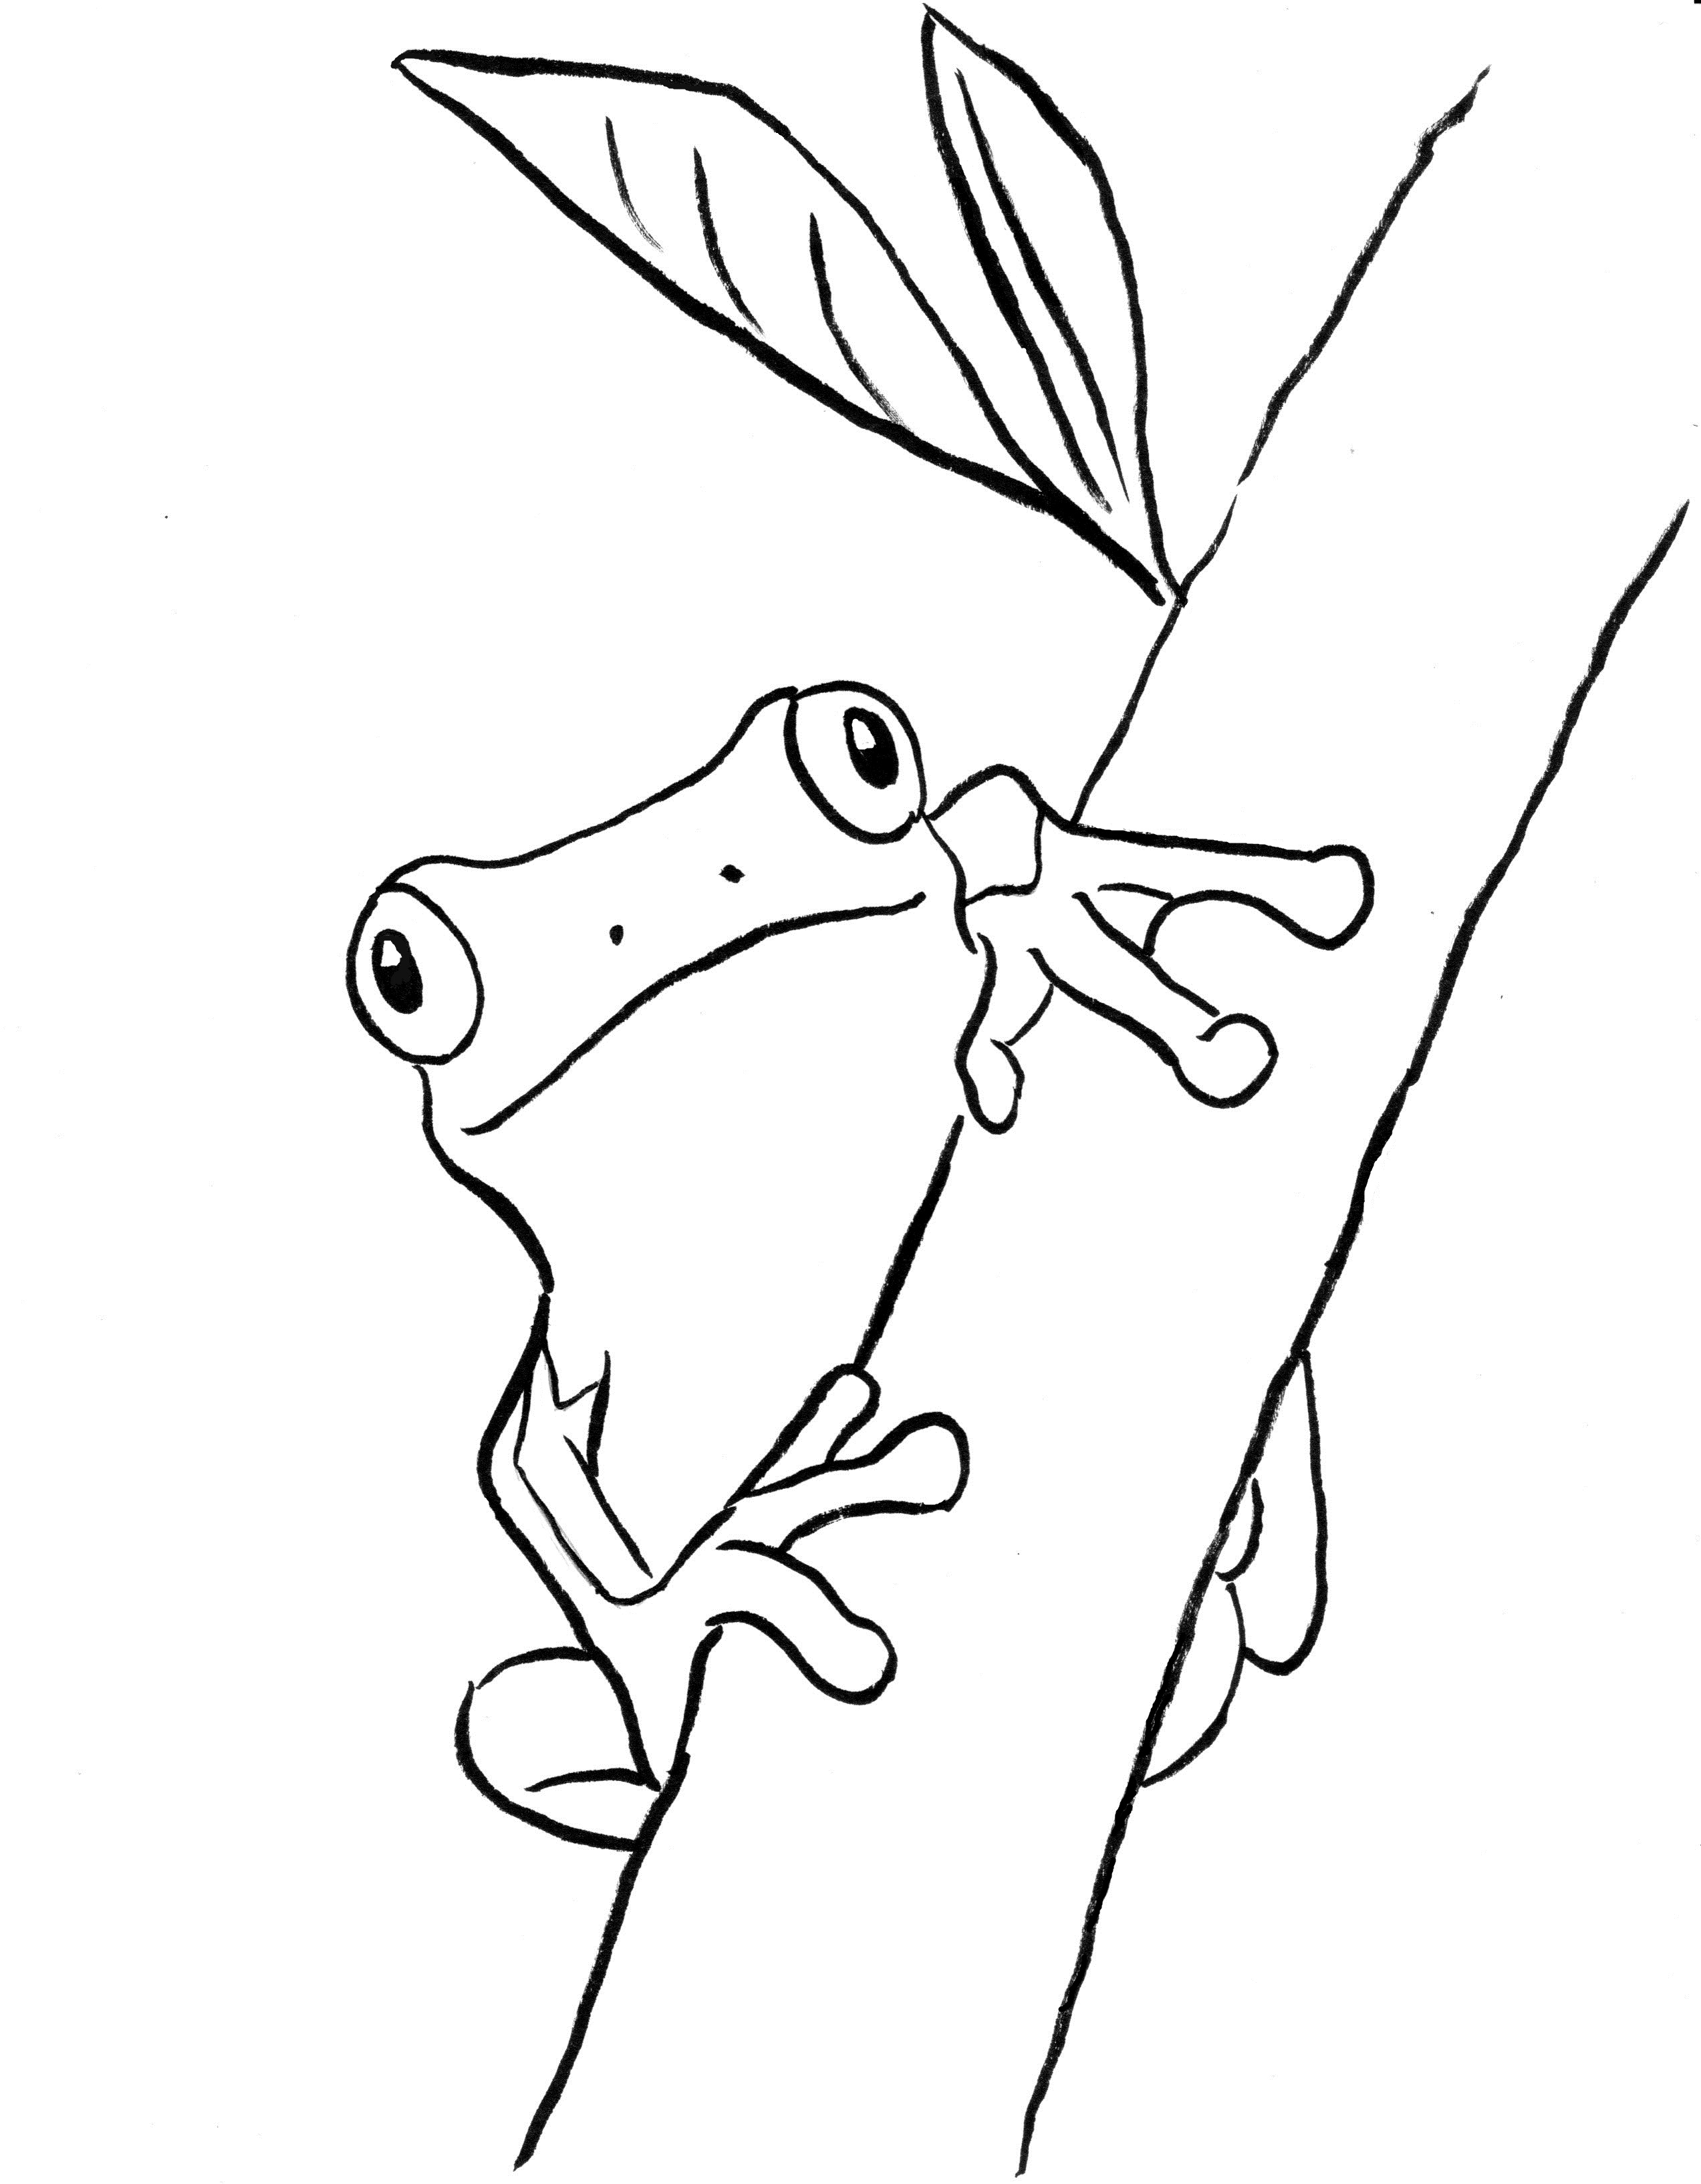 rainforest frog coloring pages tree frog coloring page art starts coloring pages rainforest frog